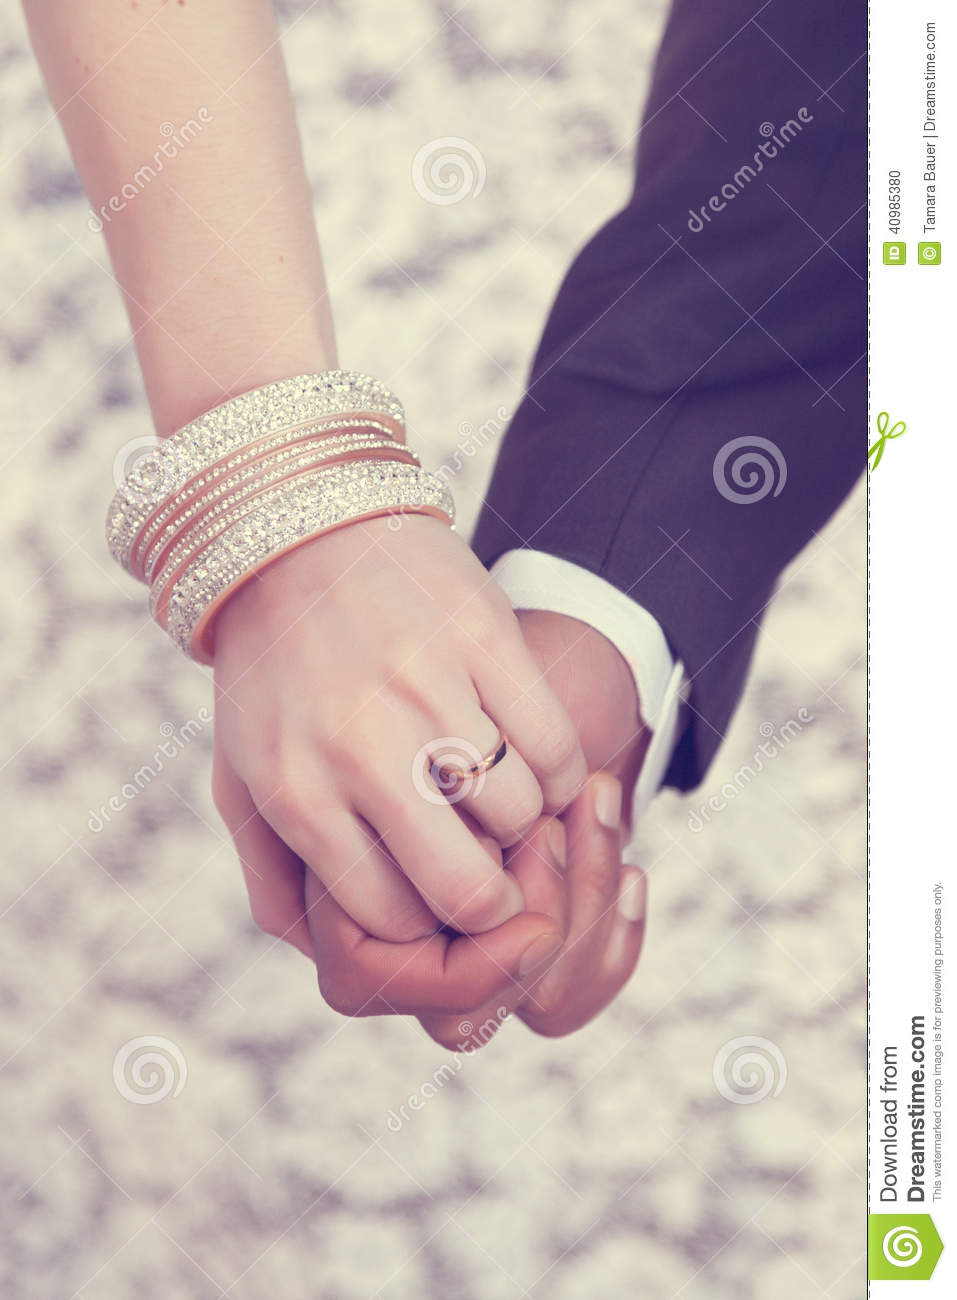 wedding ring on hand stock photo image 40985380